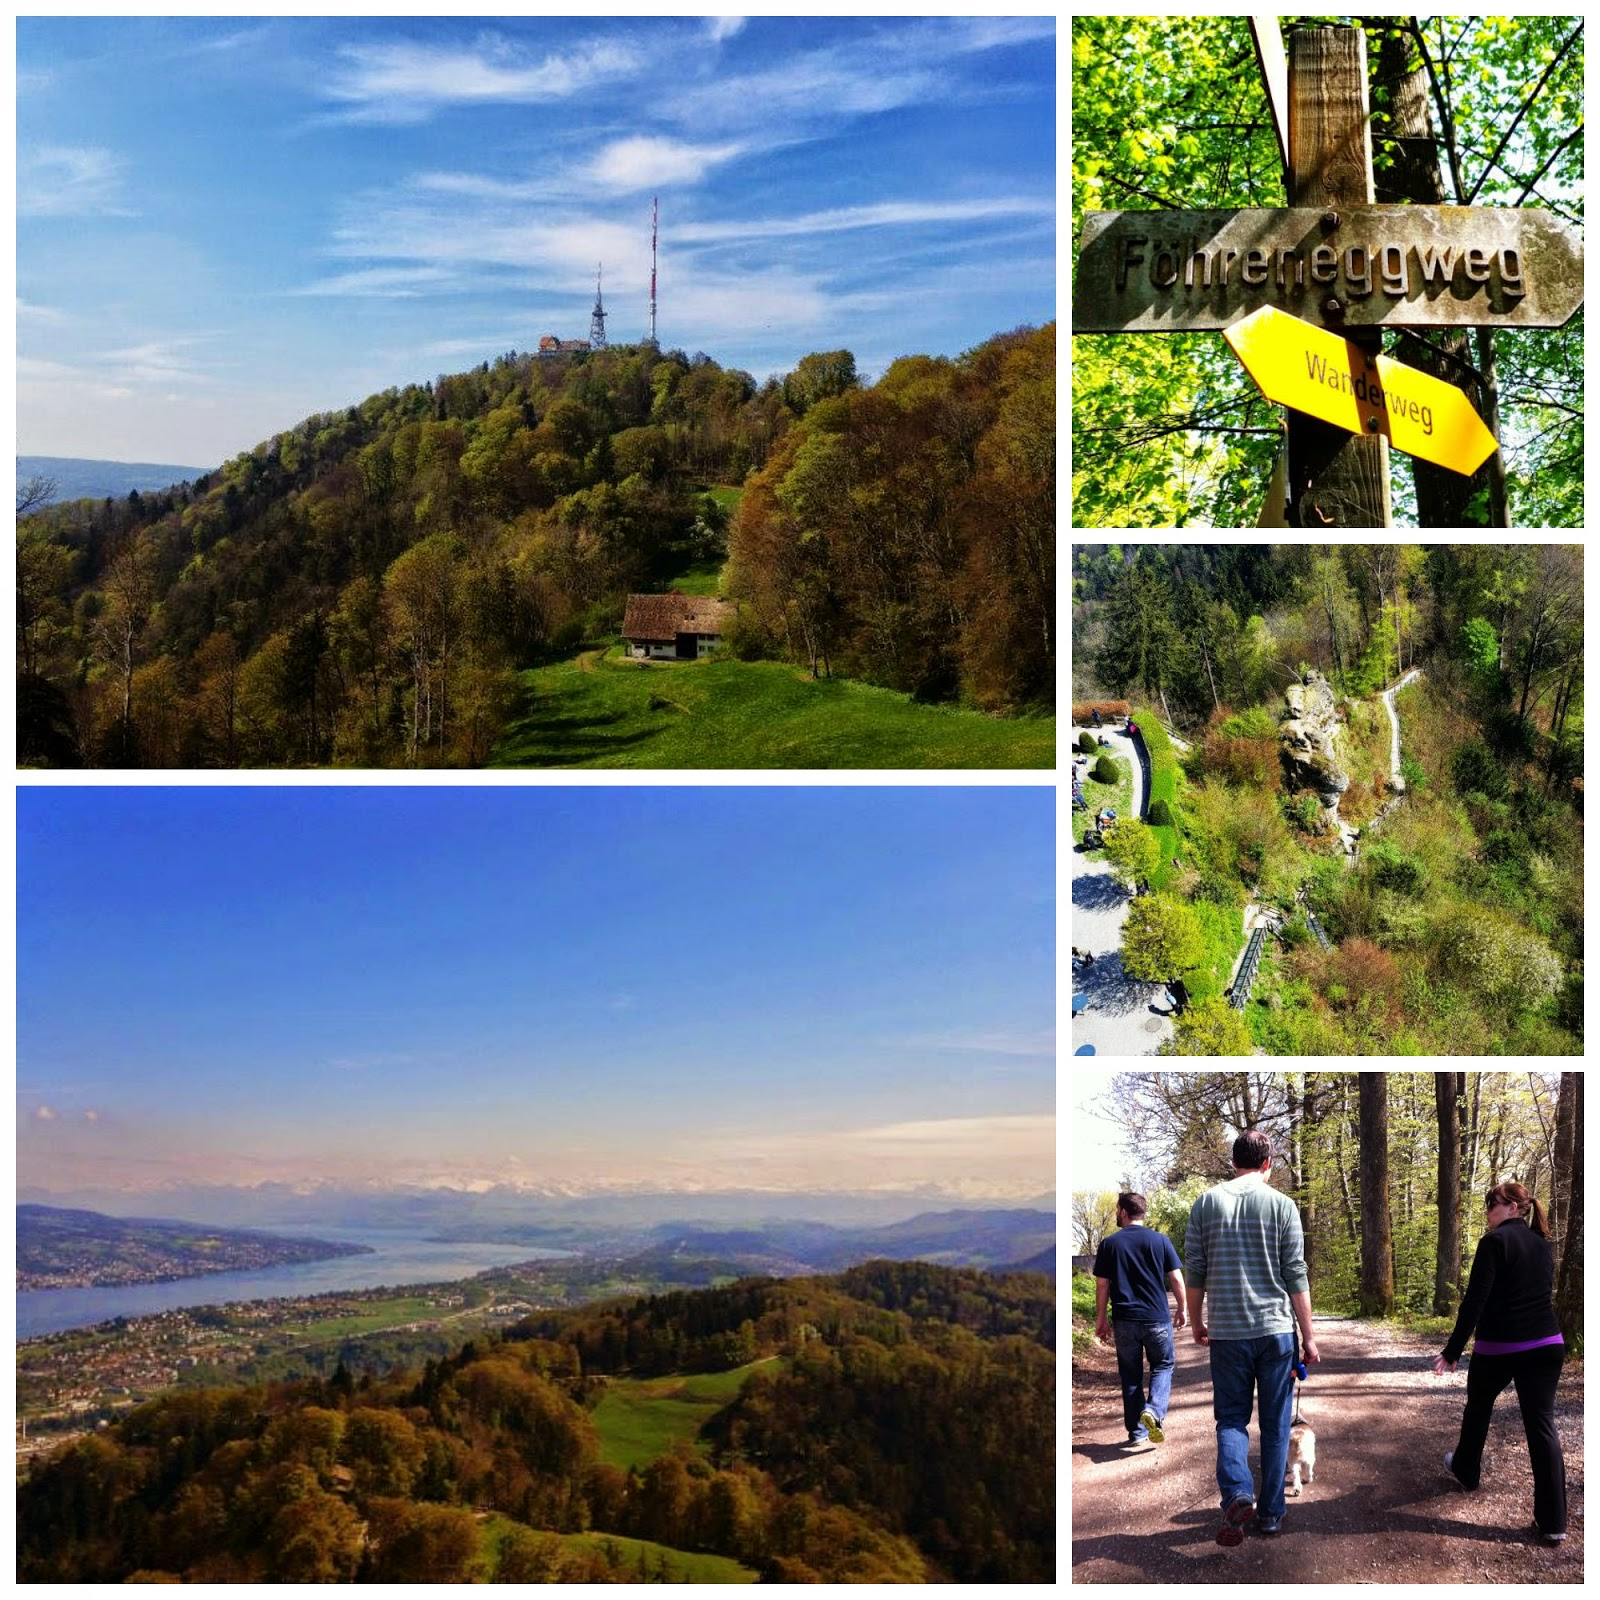 Hike the Uetliberg for the best views of Zurich, Switzerland and the Swiss Alps